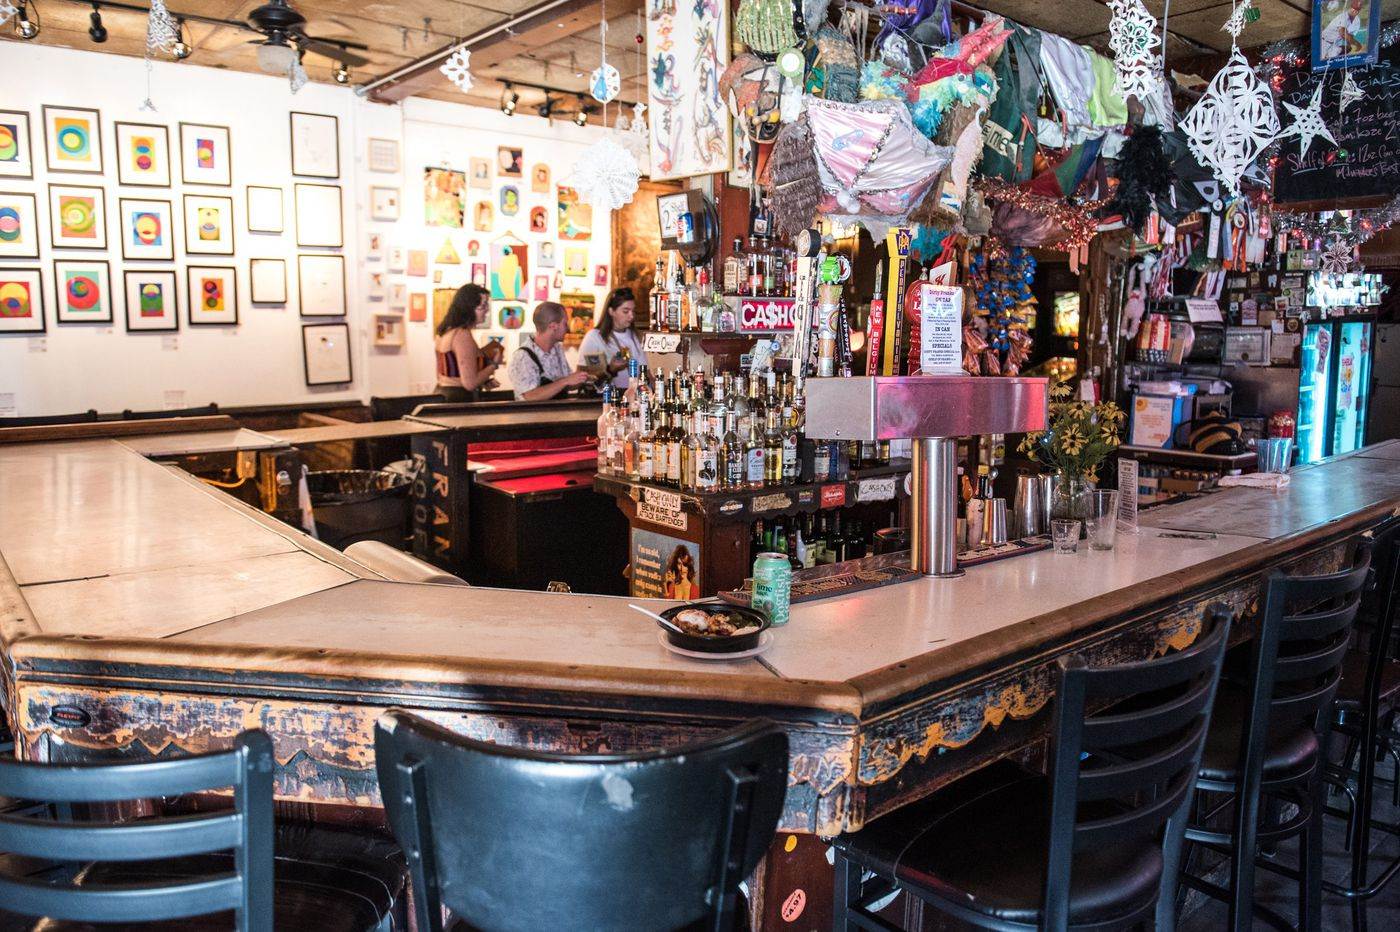 Forget BYOB. These are bars where you can BYOF (Bring Your Own Food)